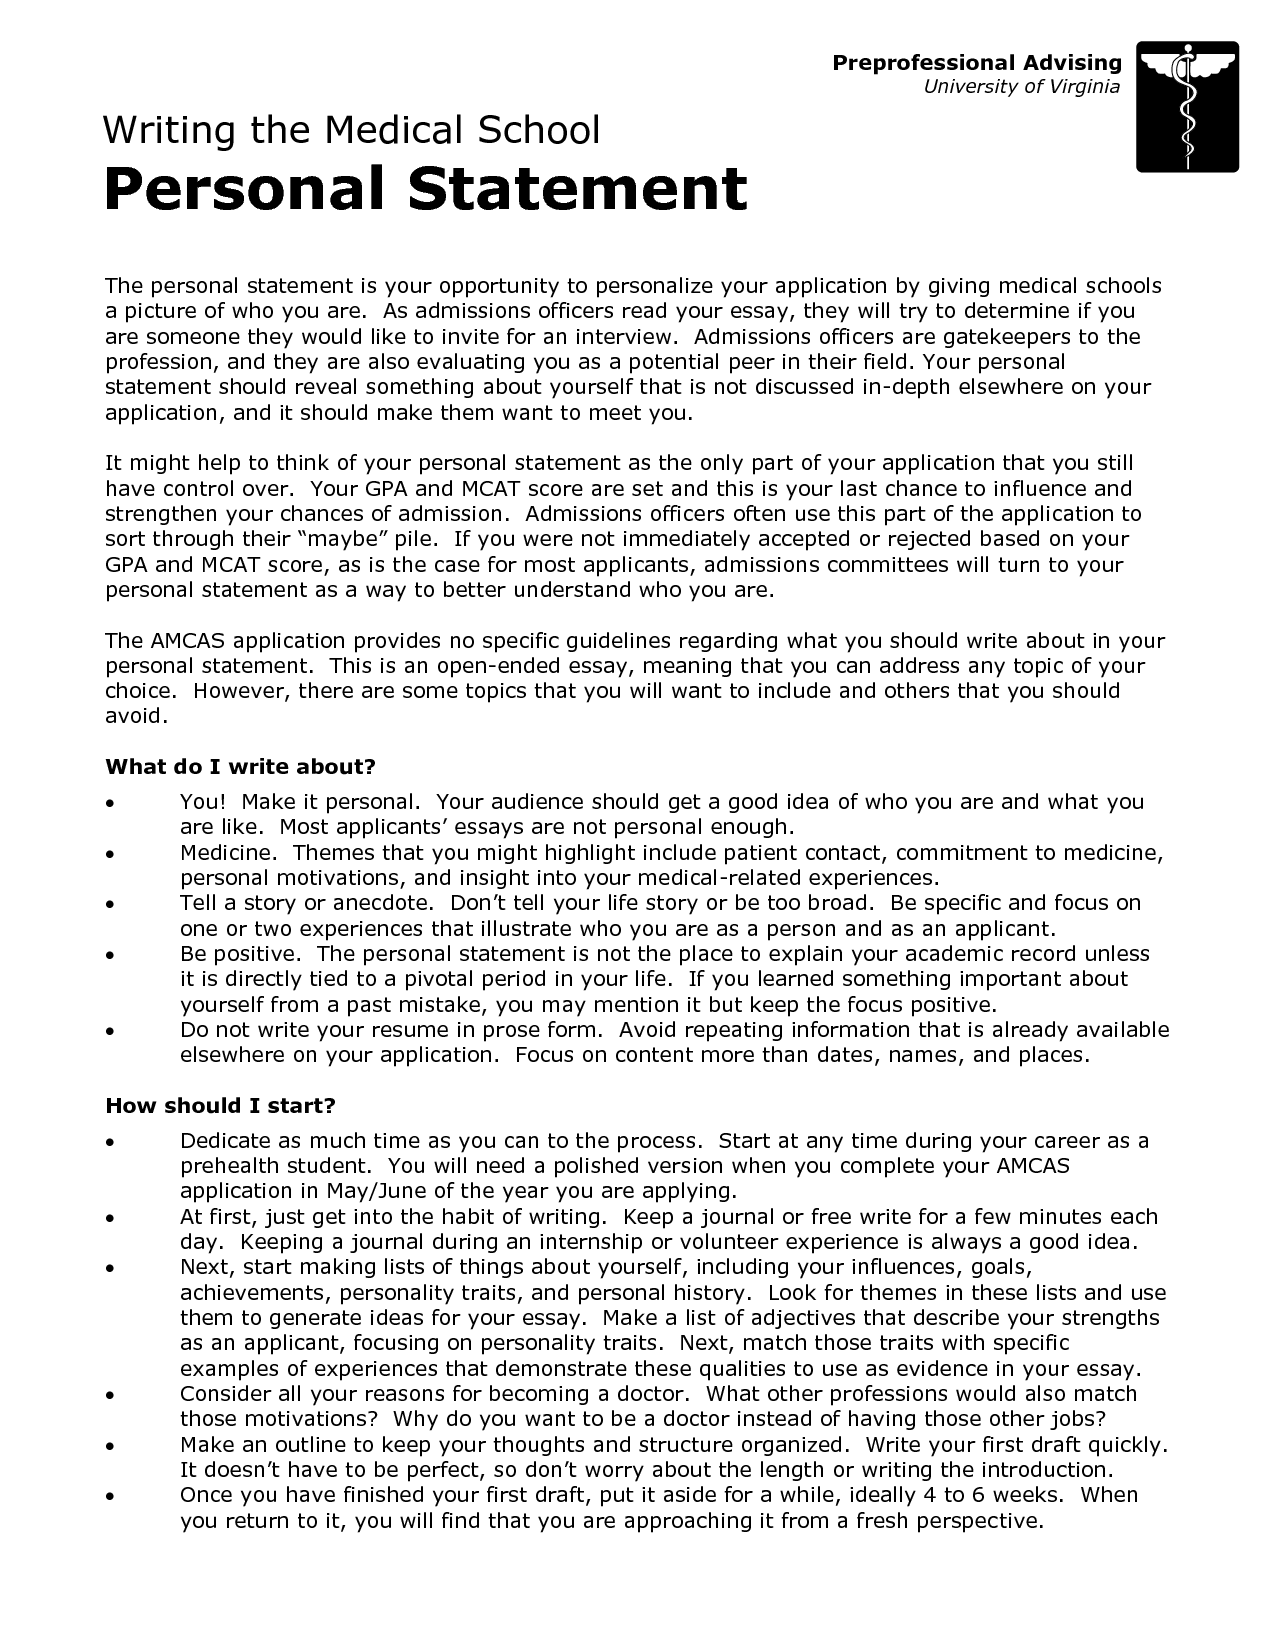 personal essay for college applications As your personal statement is one you will presumably be using for the majority of your college applications (if your colleges use collgeapp), there is no excuse for sending off an essay that is not completely free of mechanical and grammatical errors.